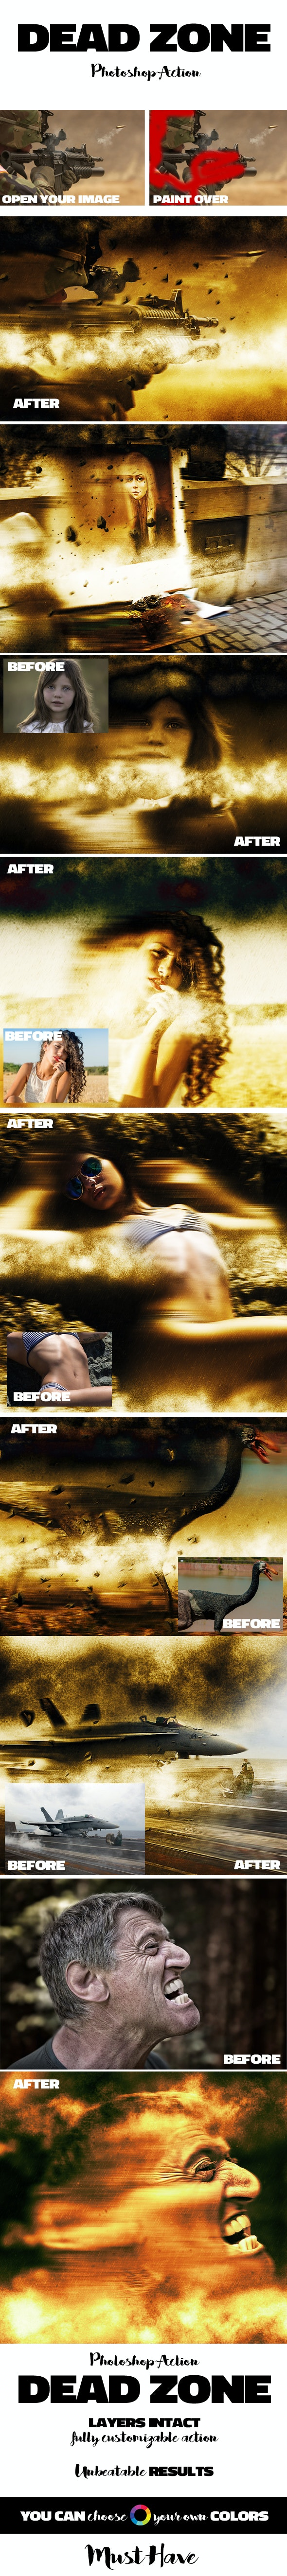 Dead Zone Fire Blast Photoshop Action - Photo Effects Actions